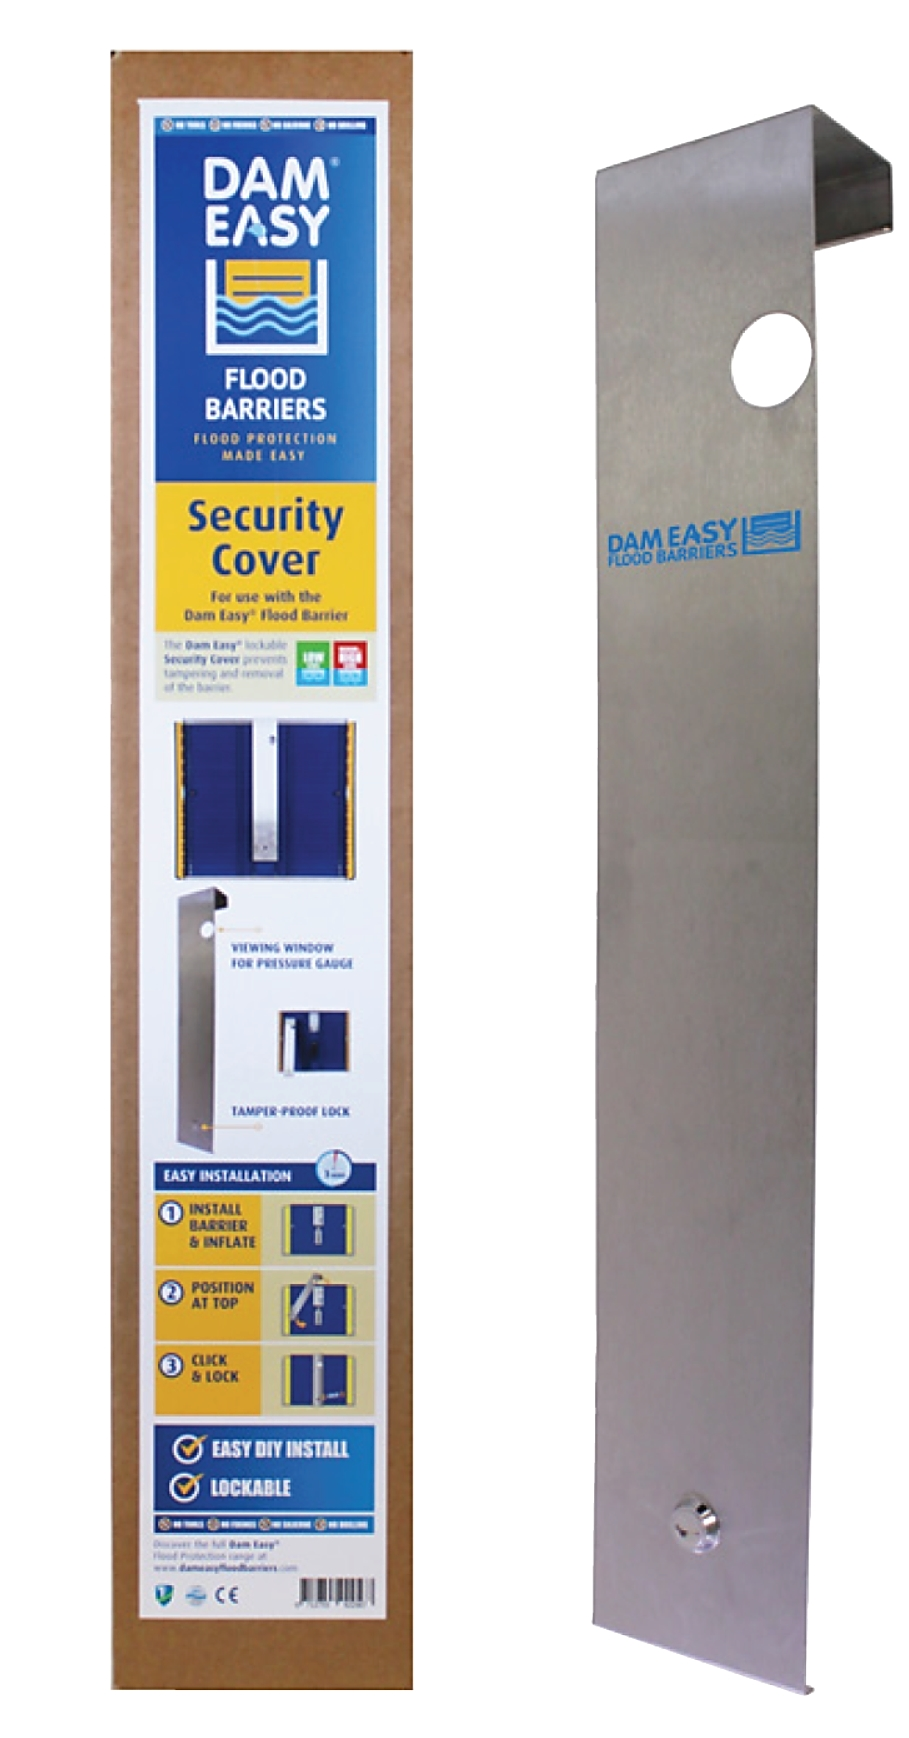 Security Cover